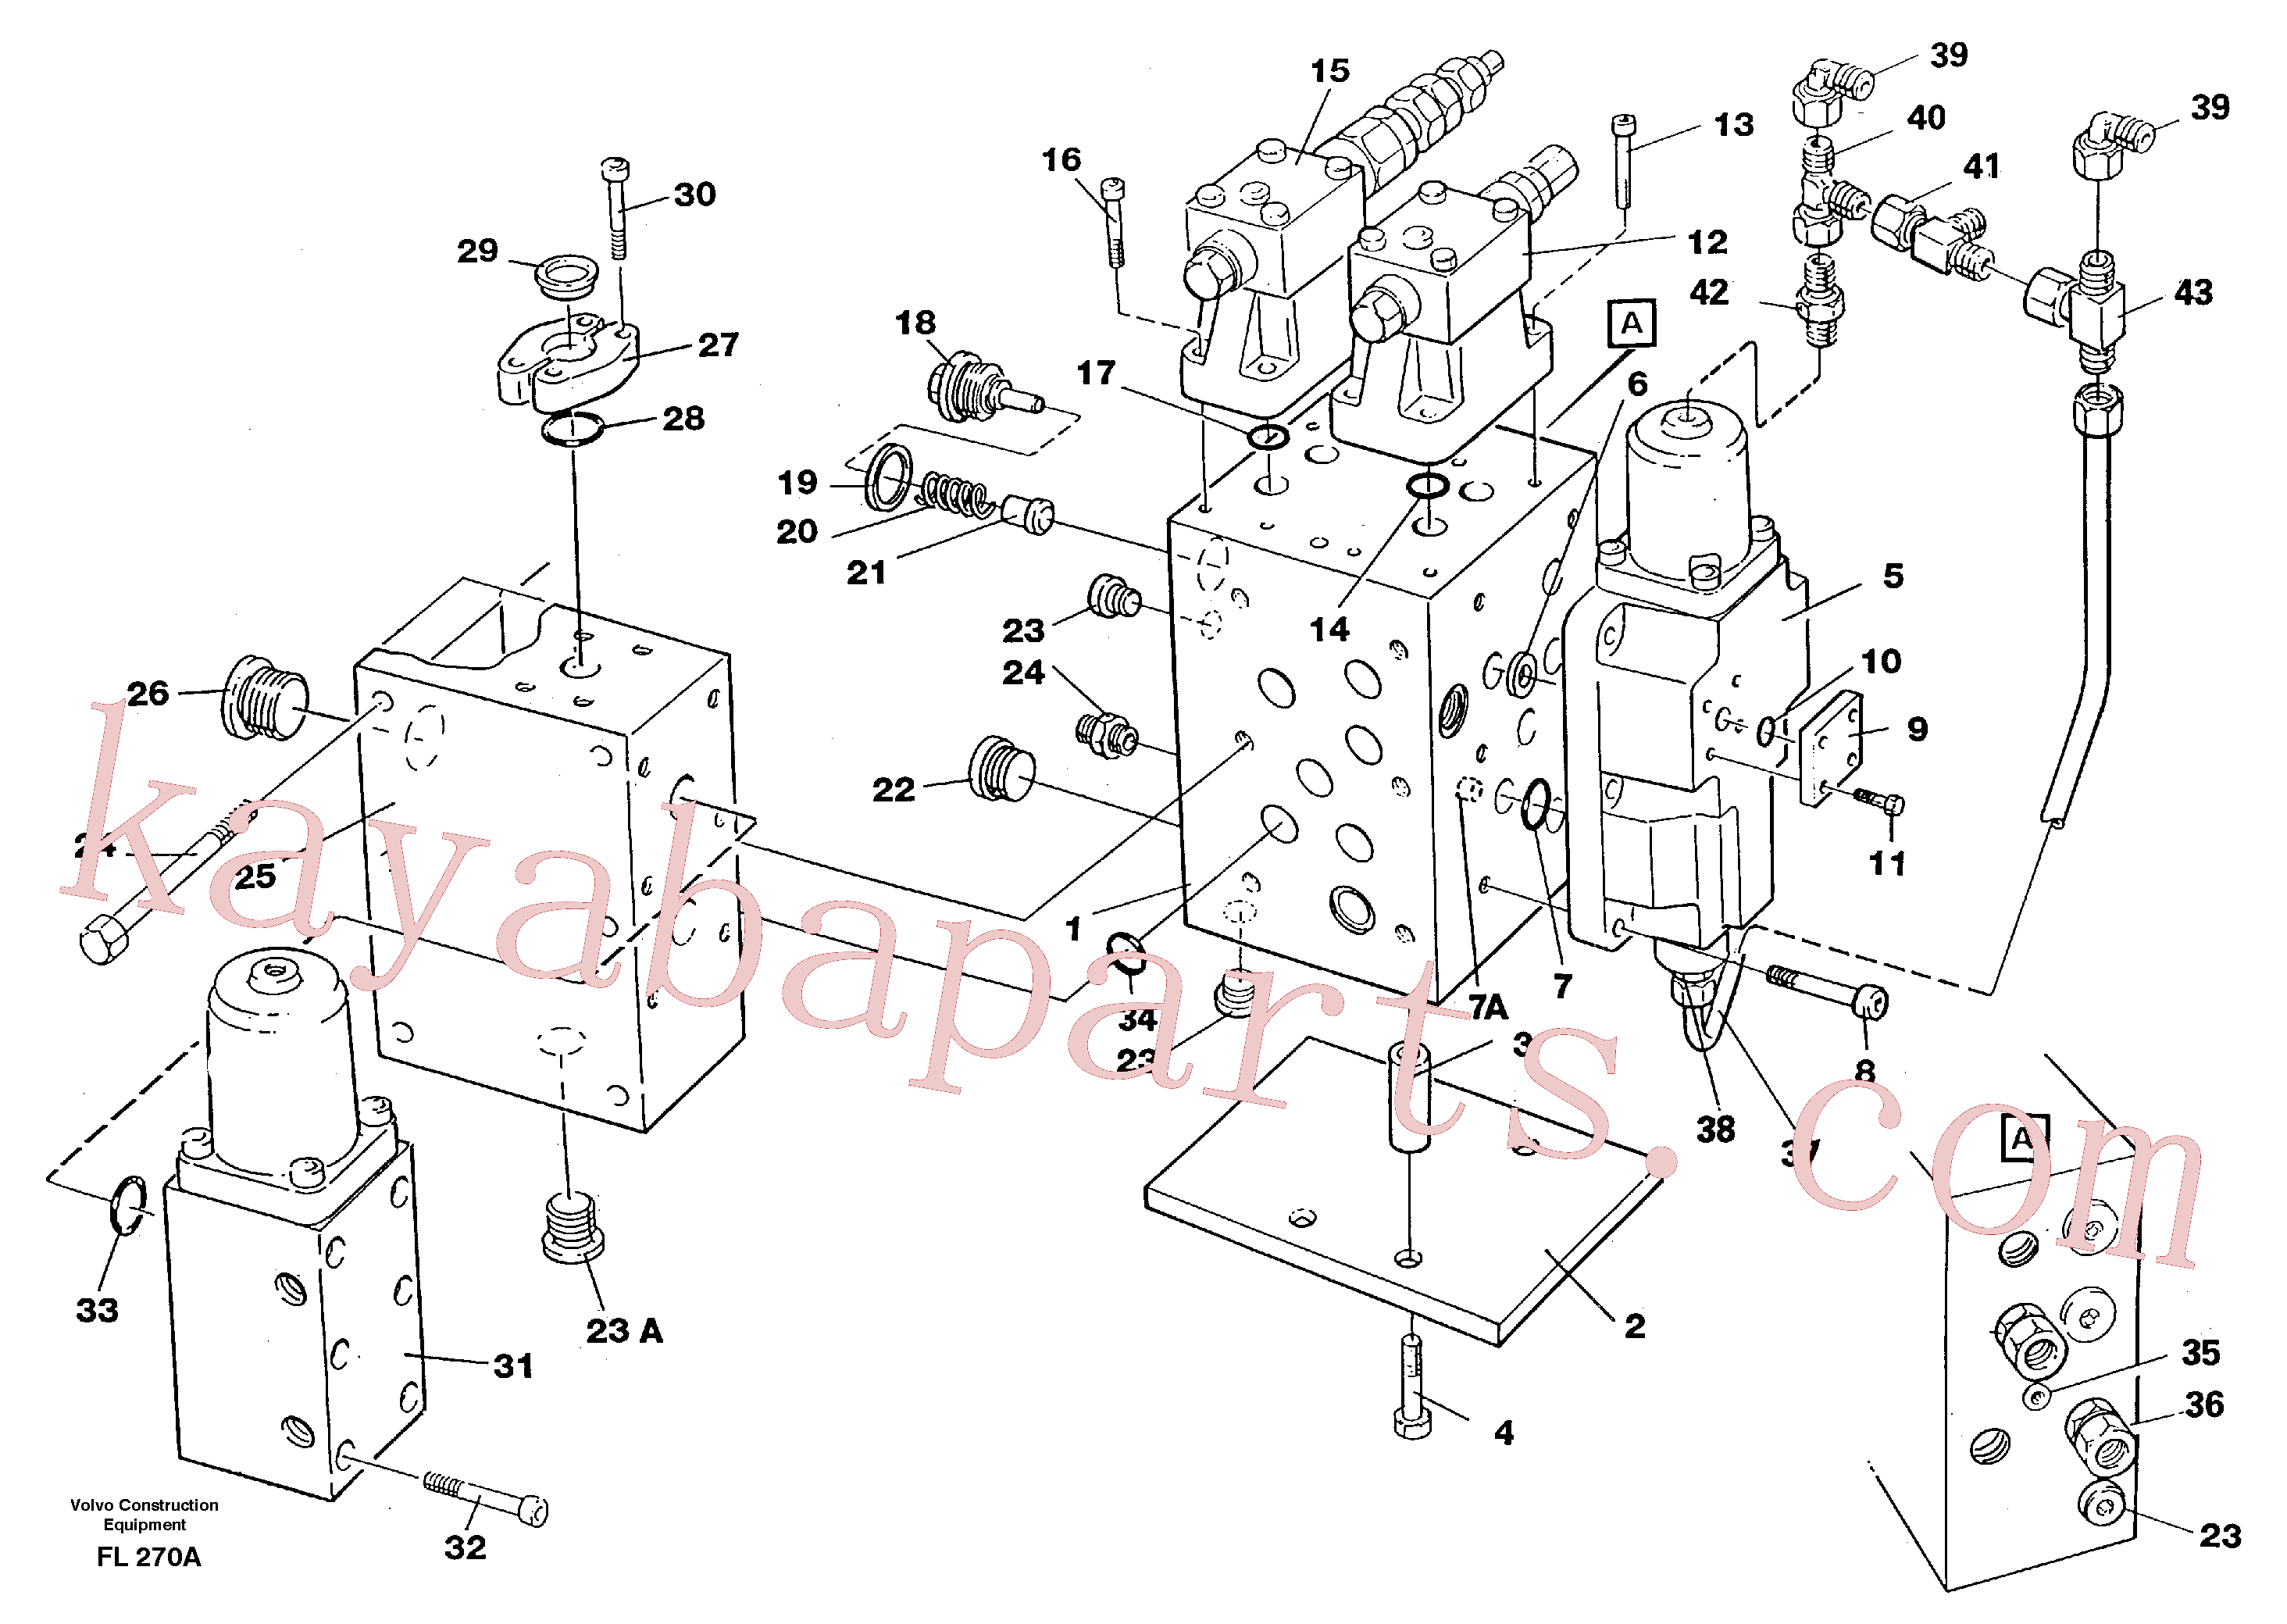 VOE13964042 for Volvo Slew valve assembly(FL270A assembly)